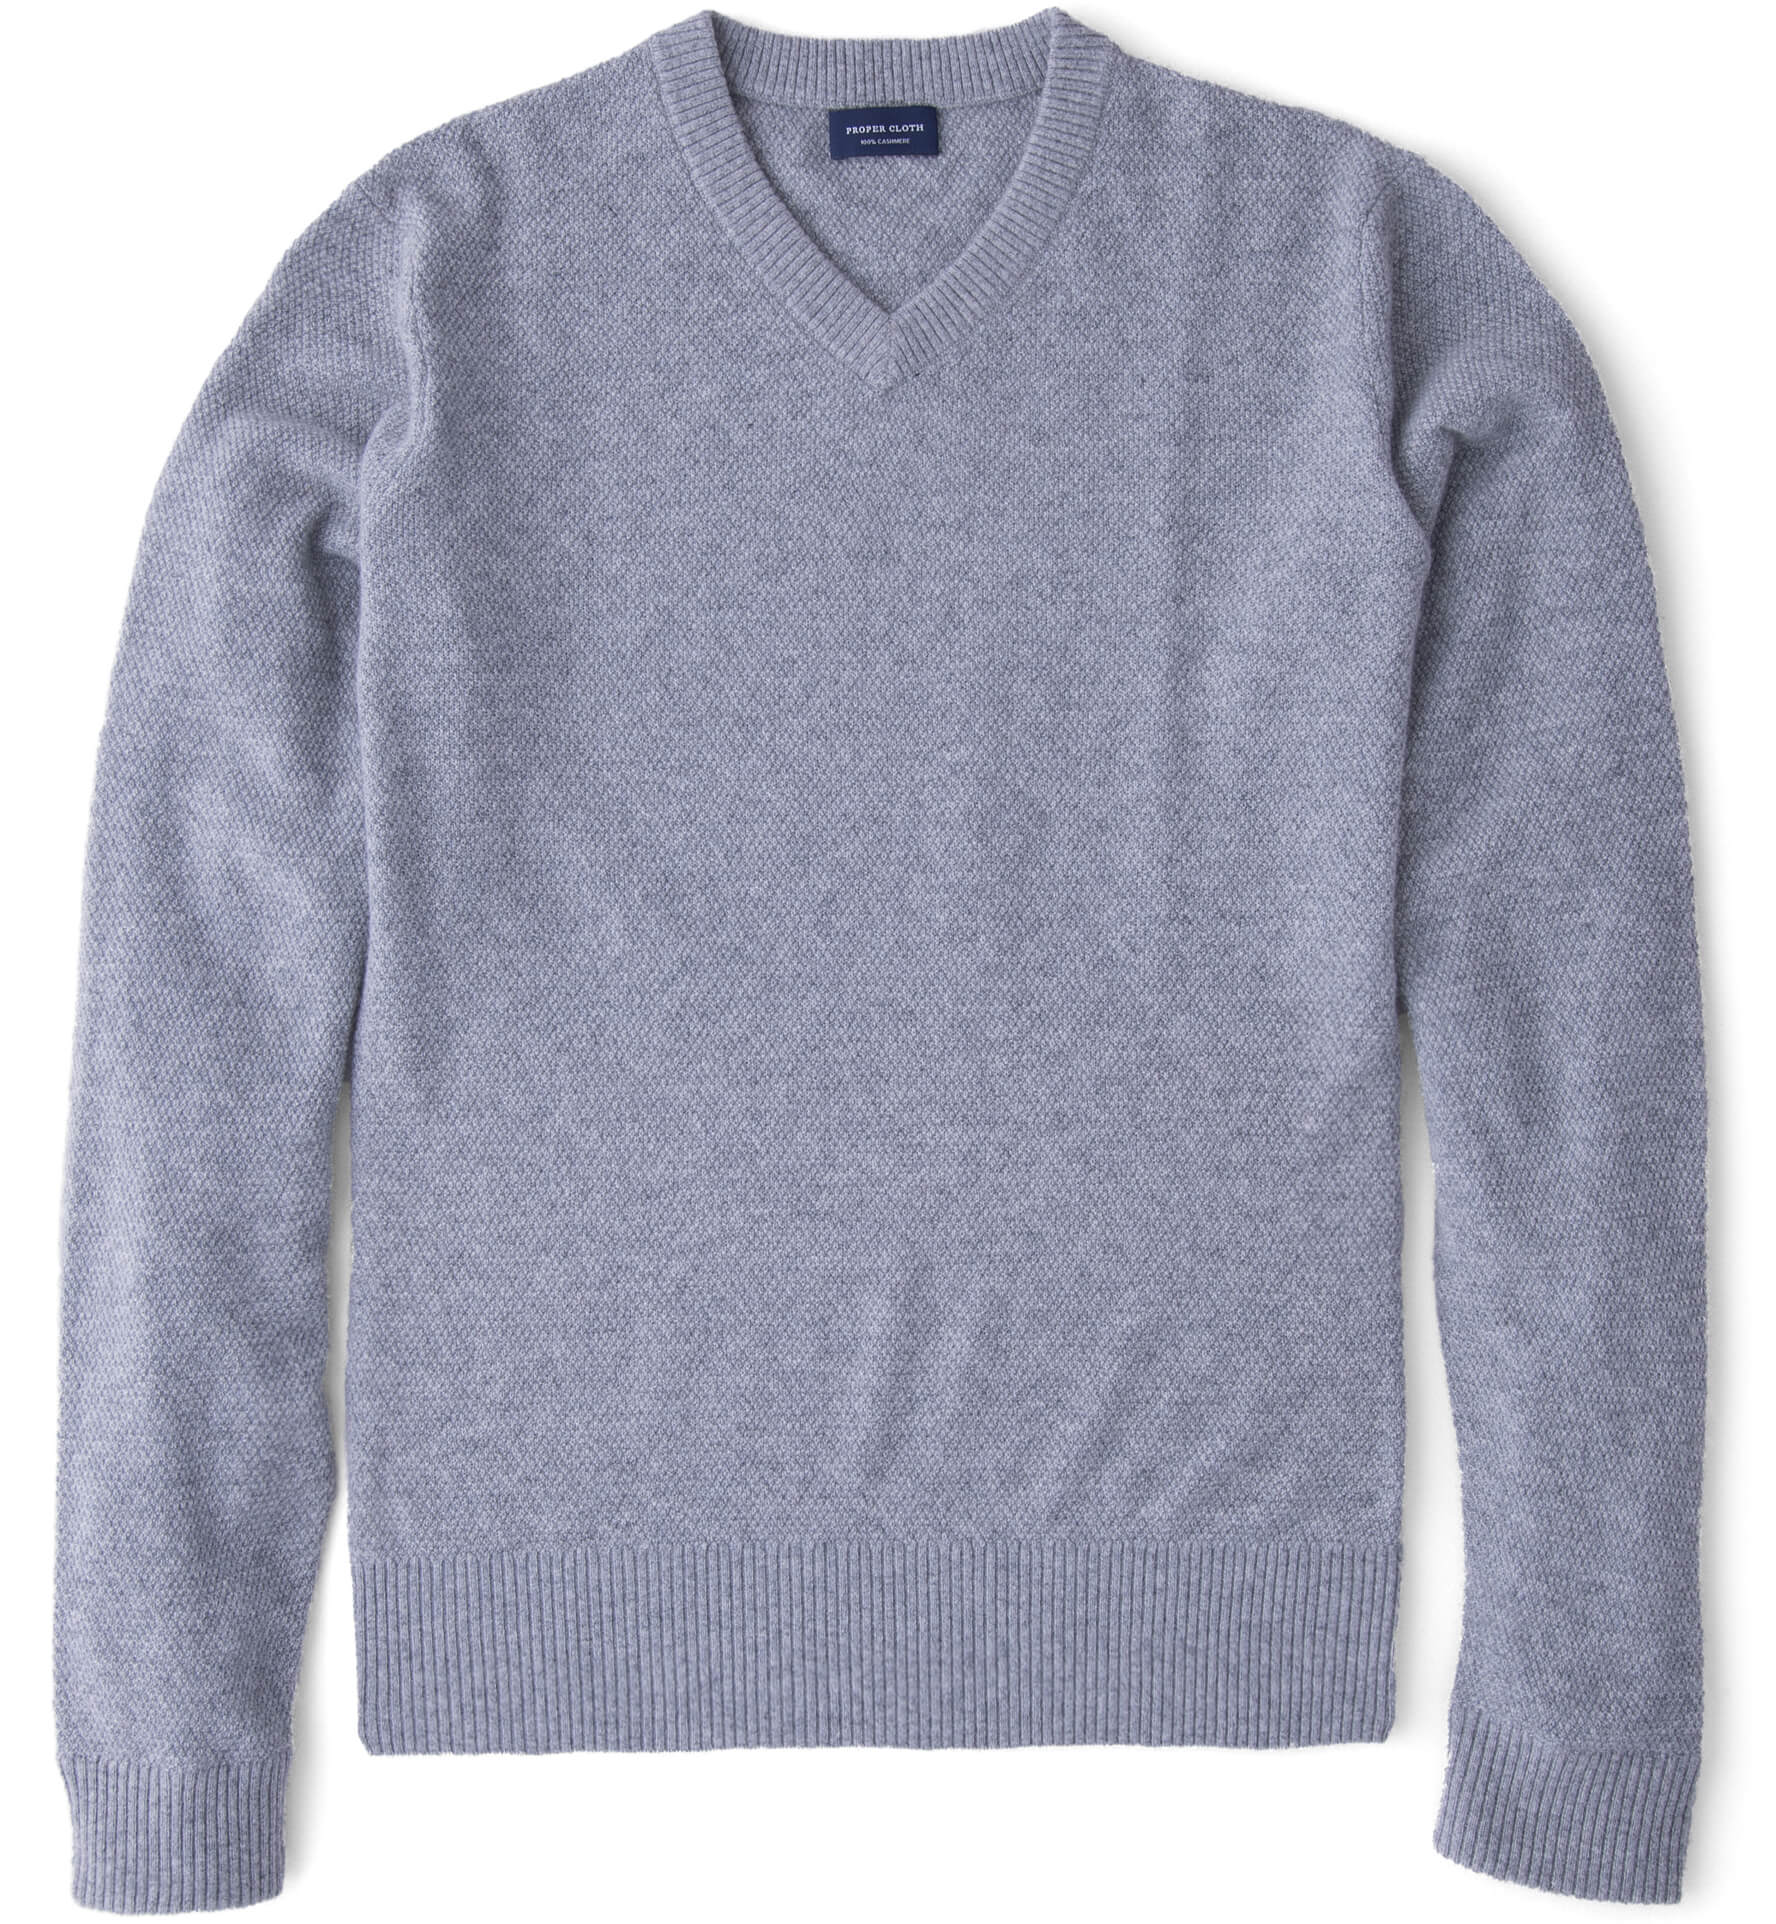 Zoom Image of Light Grey Cobble Stitch Cashmere V-Neck Sweater